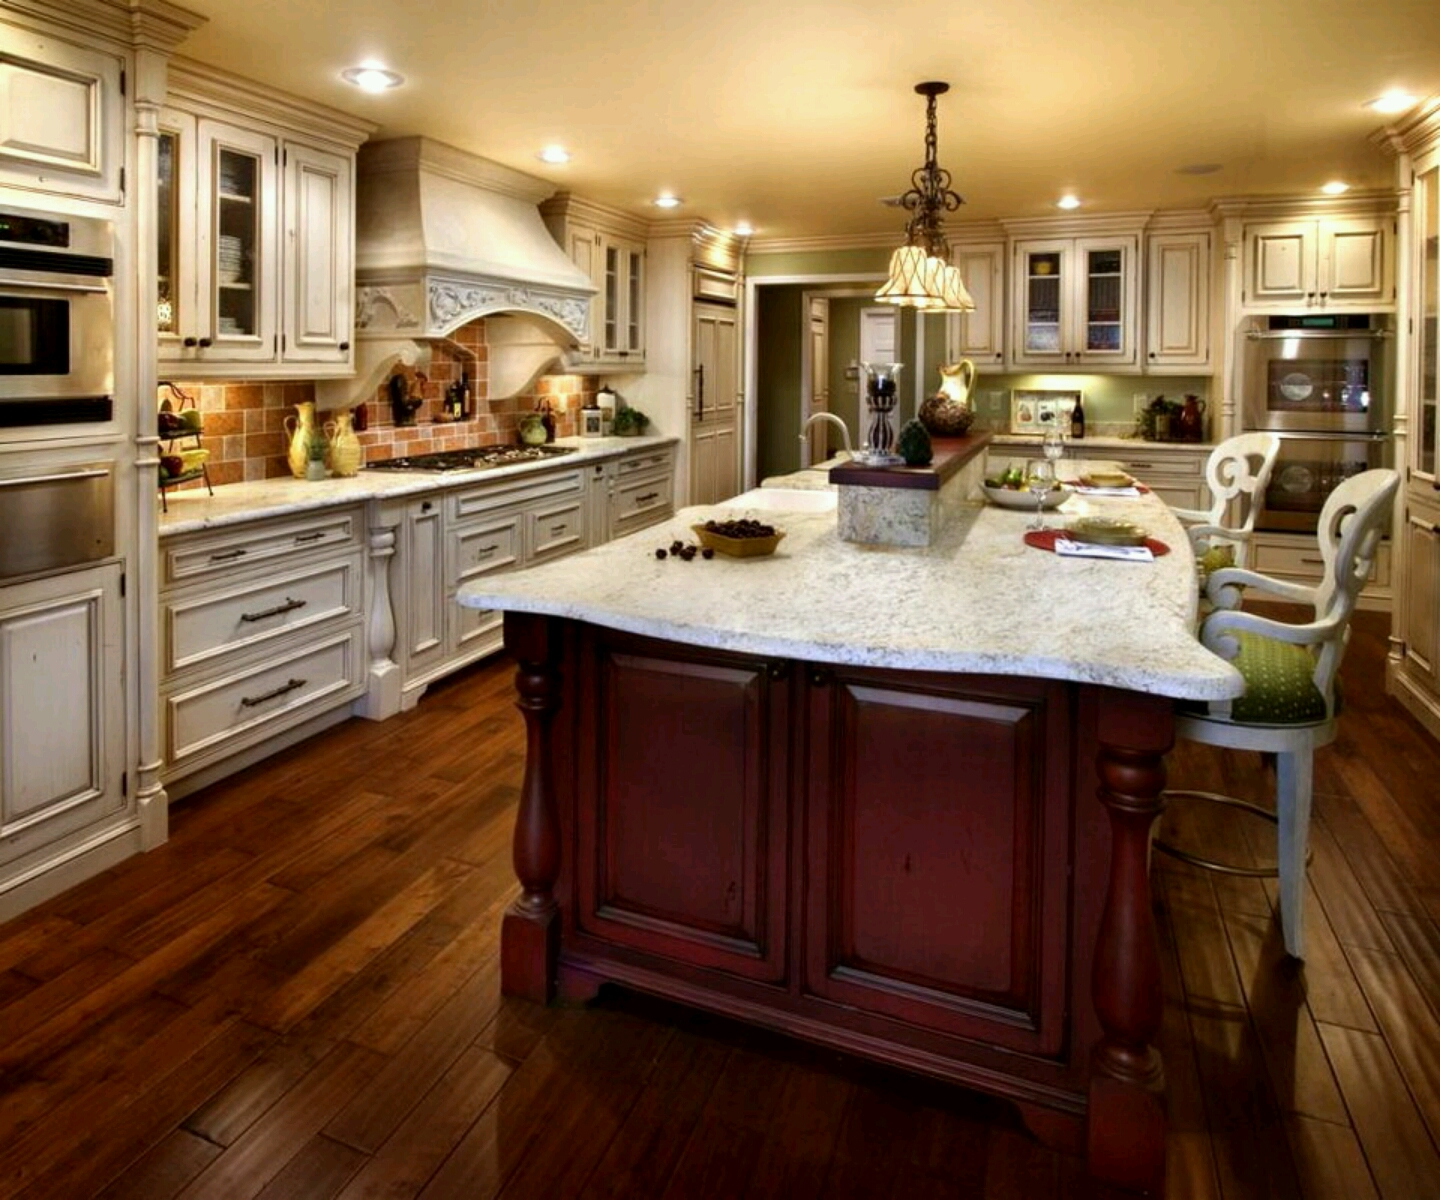 Luxury kitchen modern kitchen cabinets designs for Kitchen designs island